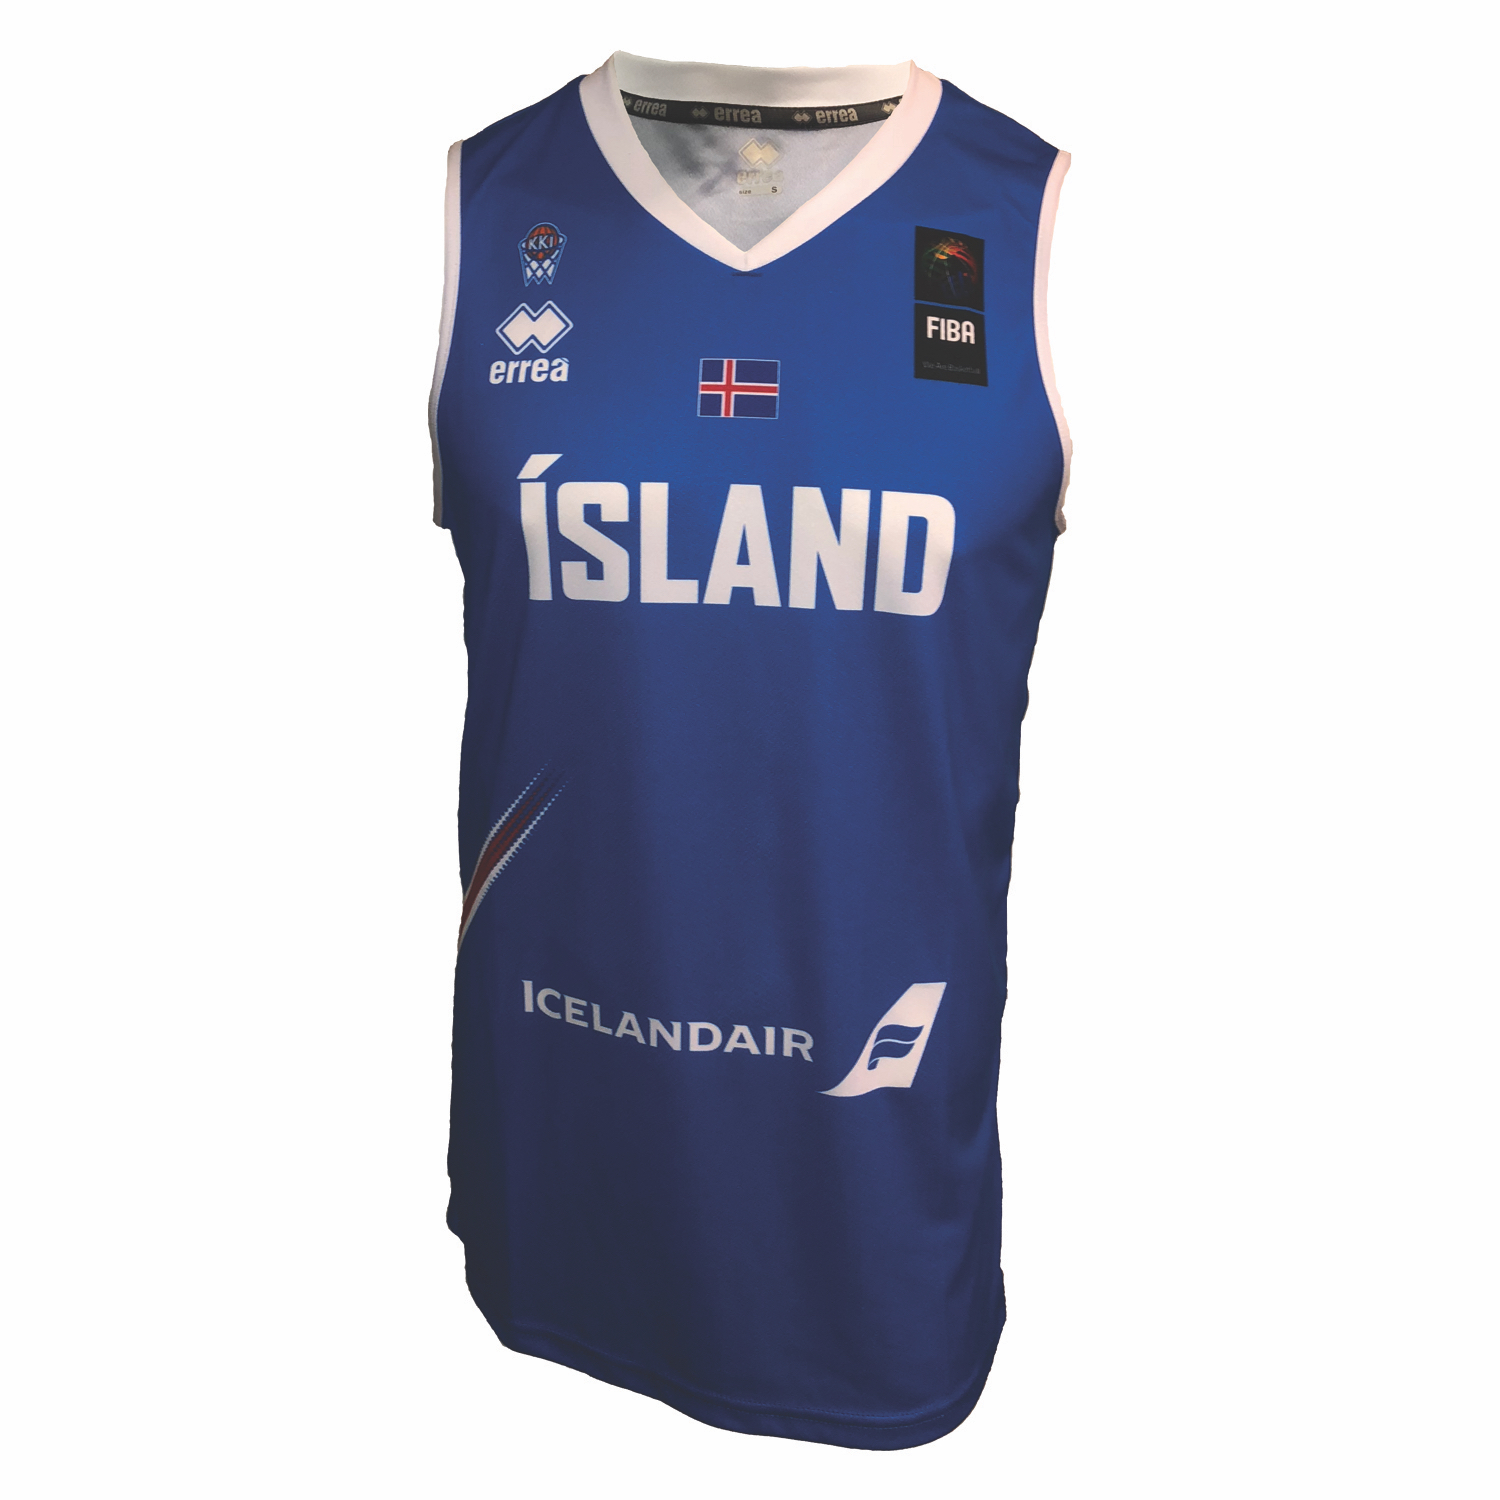 KKÍ - Iceland National Basketball Team Home Shirt